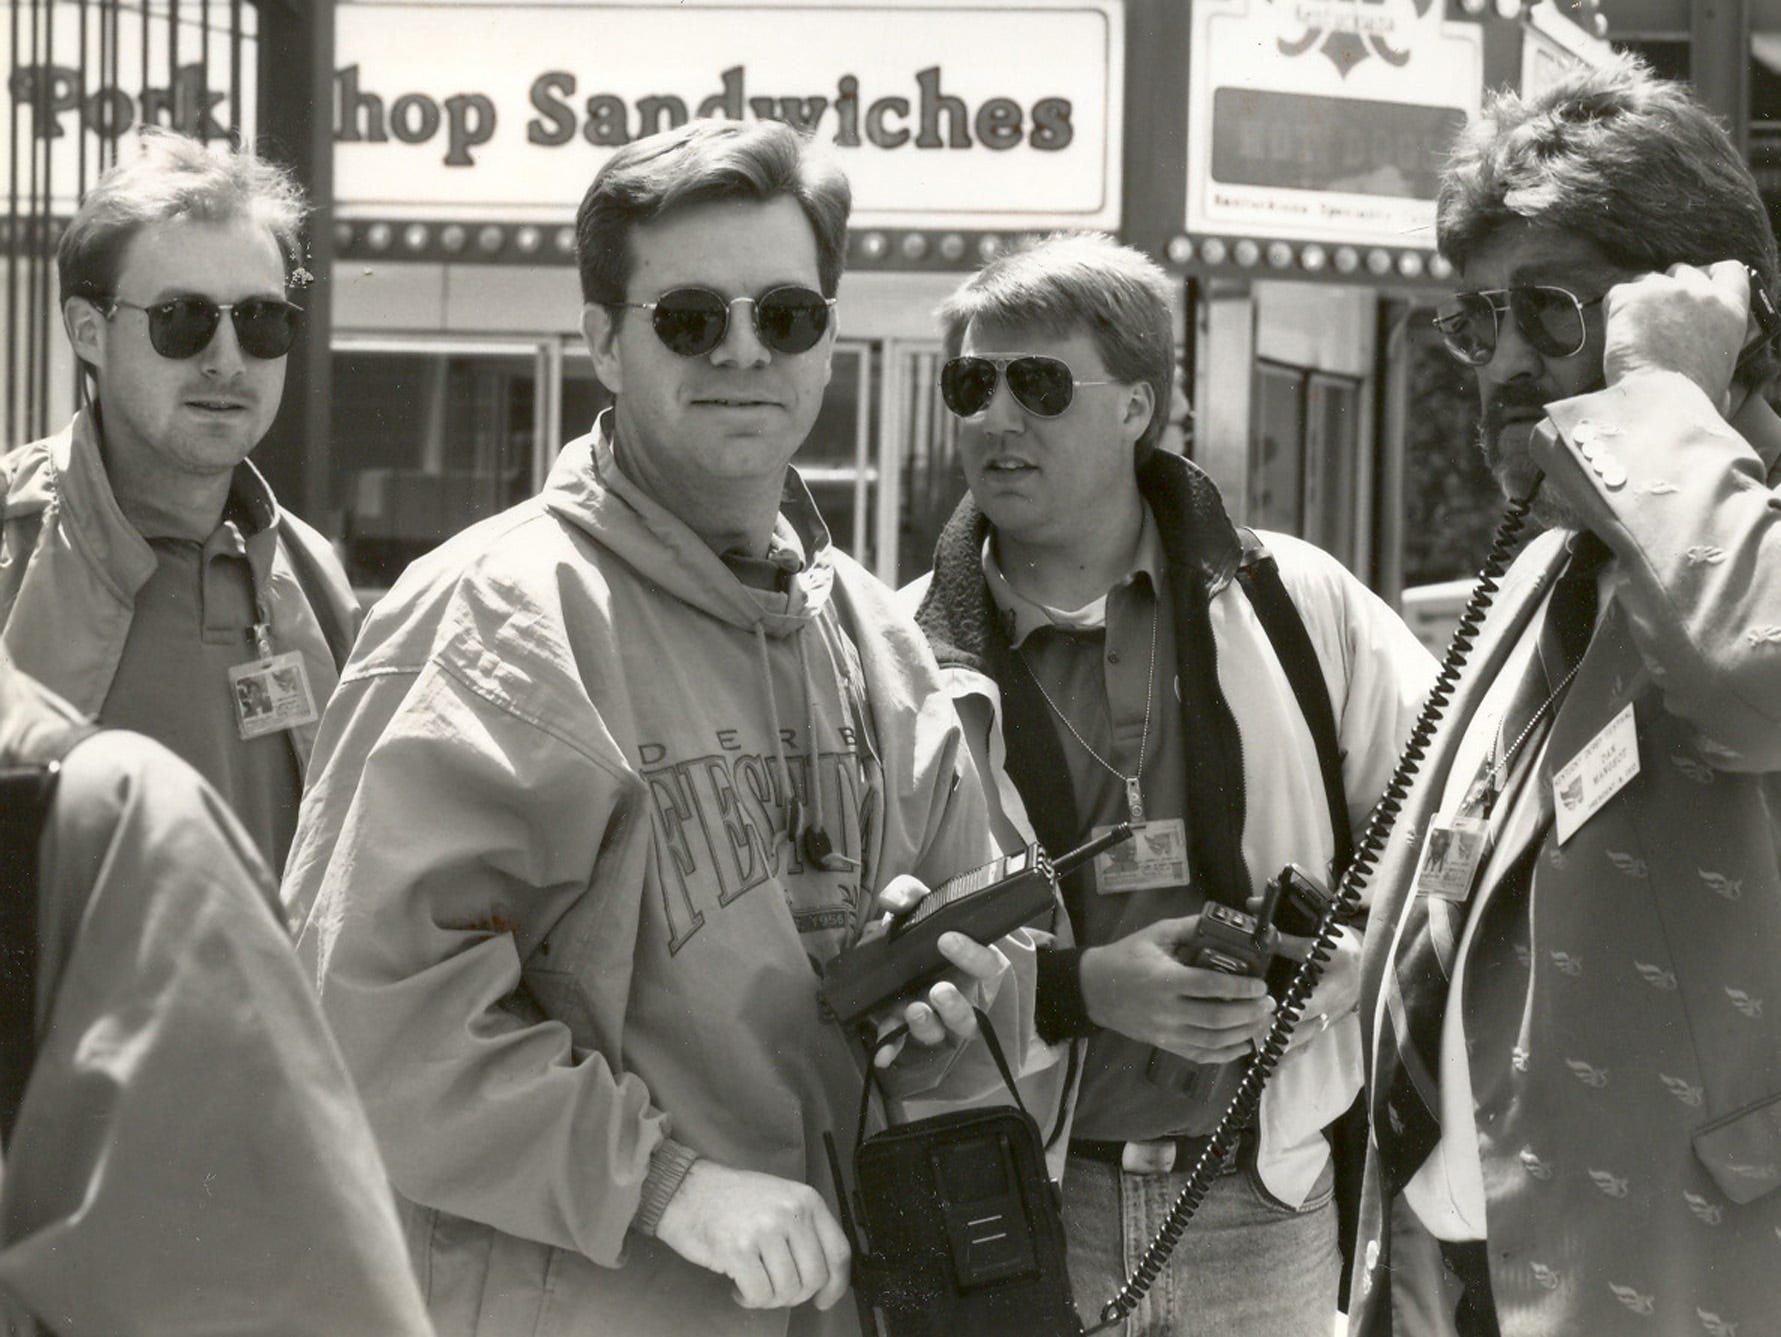 "Kentucky Derby Festival managers were dealing with bad weather in 1994 at the Chow Wagon. From left to right: John Reisert, event manager; Mike Berry, vice president and managing director; Tom Elpers, director of events; Dan Mangeot, president and CEO. ""We all look like Secret Service in our Ray Bans,"" Berry later said. Mike took over leading the Festival after Dan died unexpectedly in February 1997."